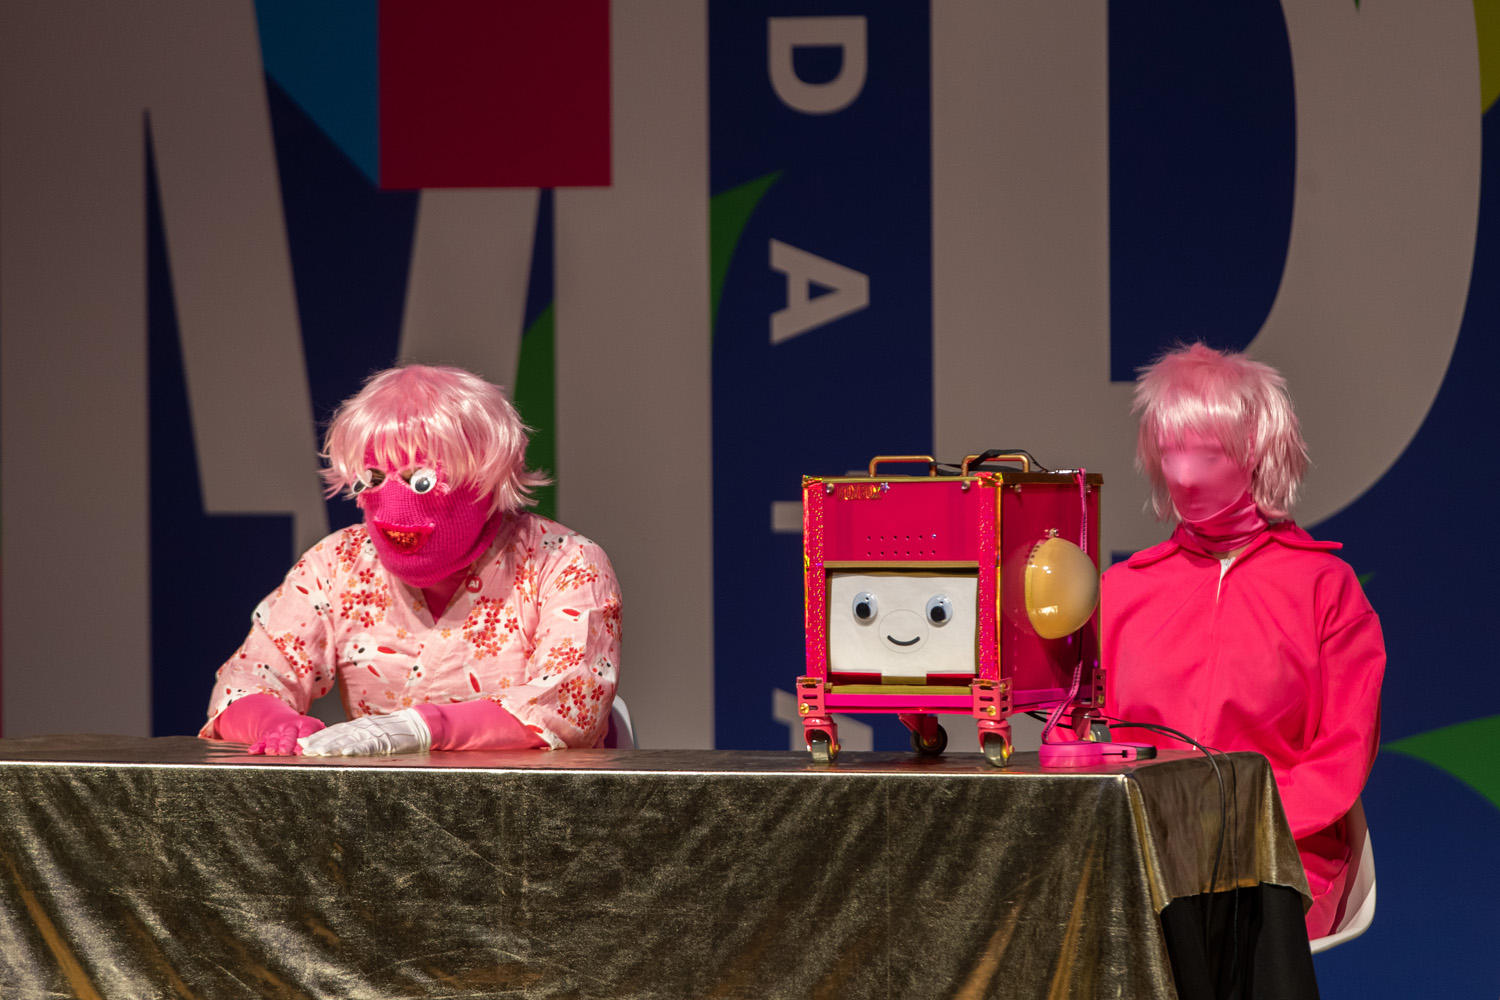 Two people wearing pink masks and wigs, one wearing a pink kimono and the other wearing a pink jumpsuit, sitting at a table with a gold tablecloth. On the desk is a cubic robot on wheels, with a smiling face.